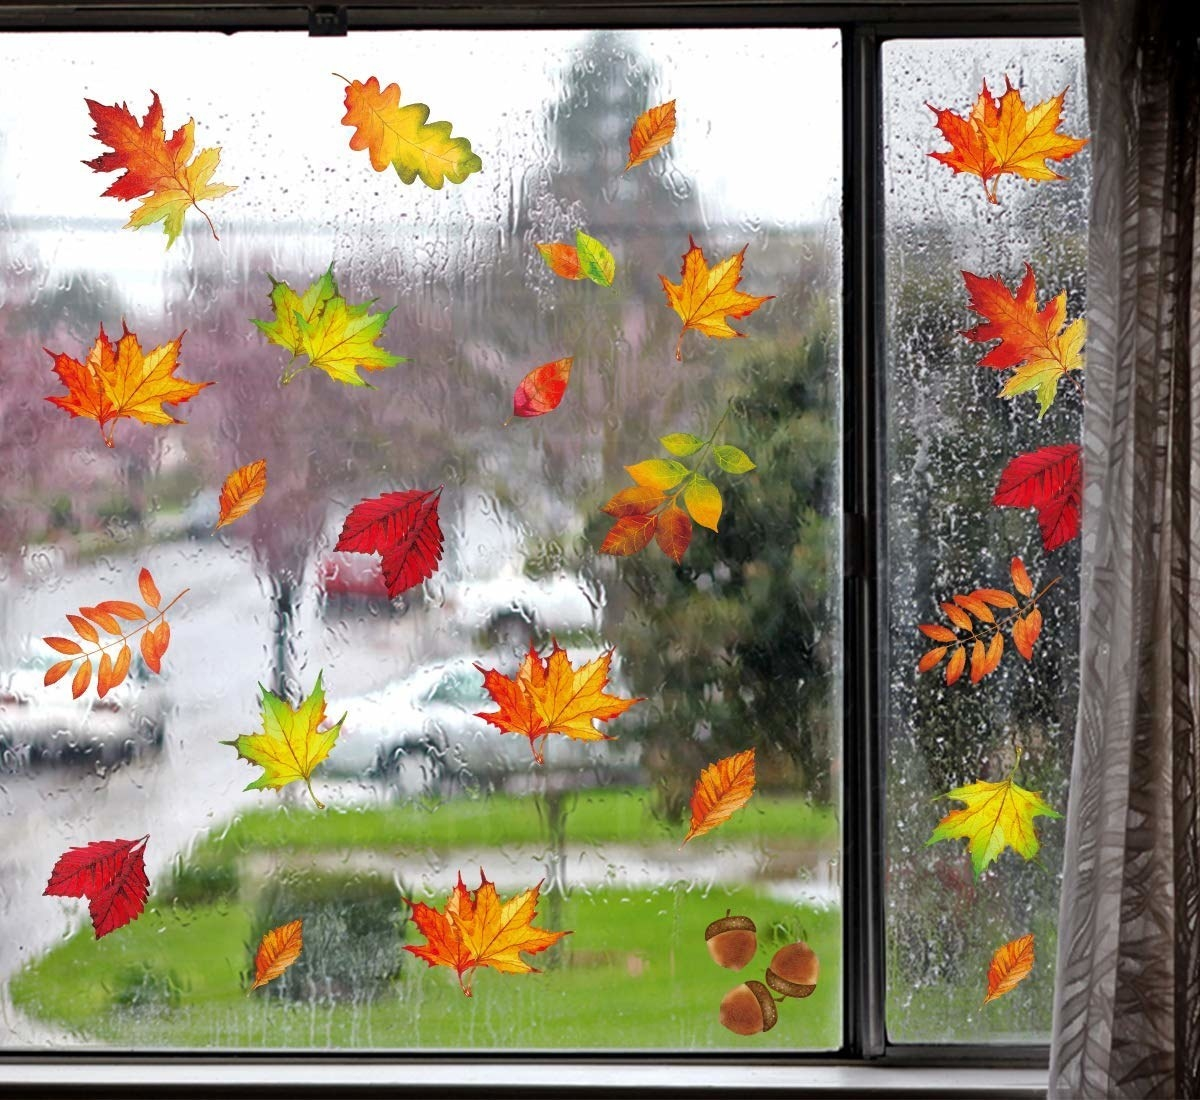 The leaves window clings are green, orange, red, and brown